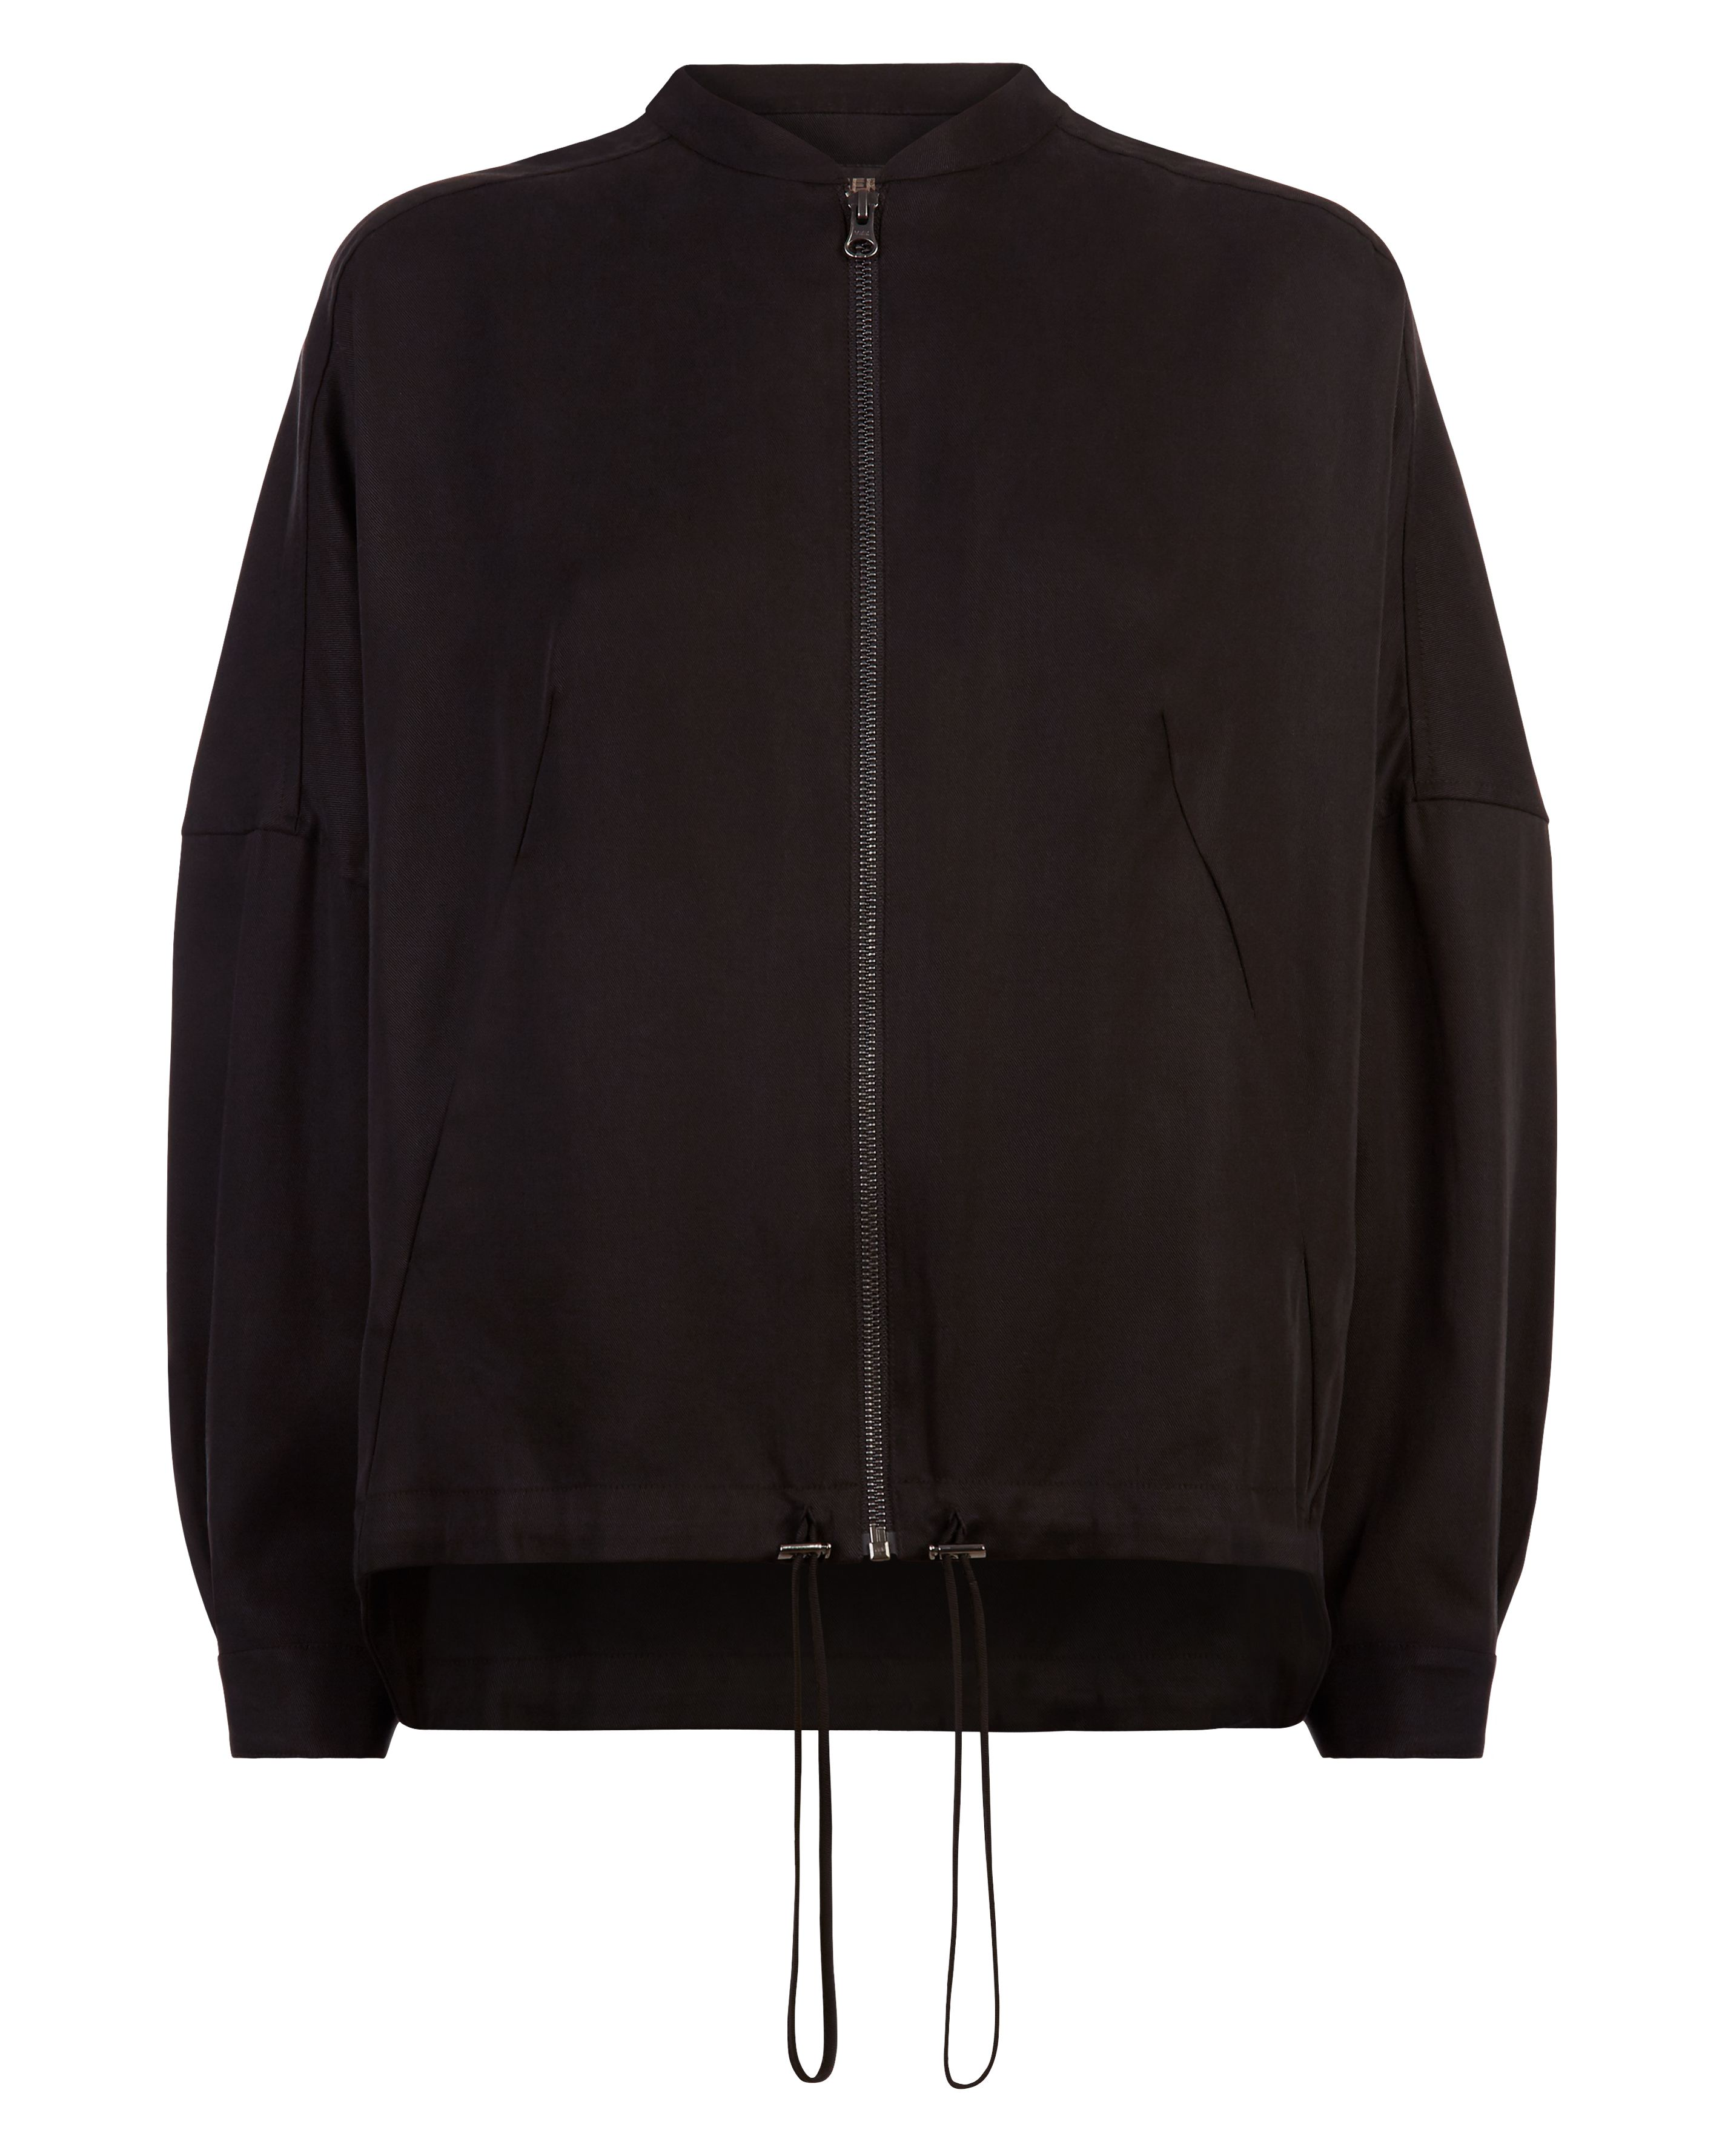 Jaeger Bomber Jacket, Black